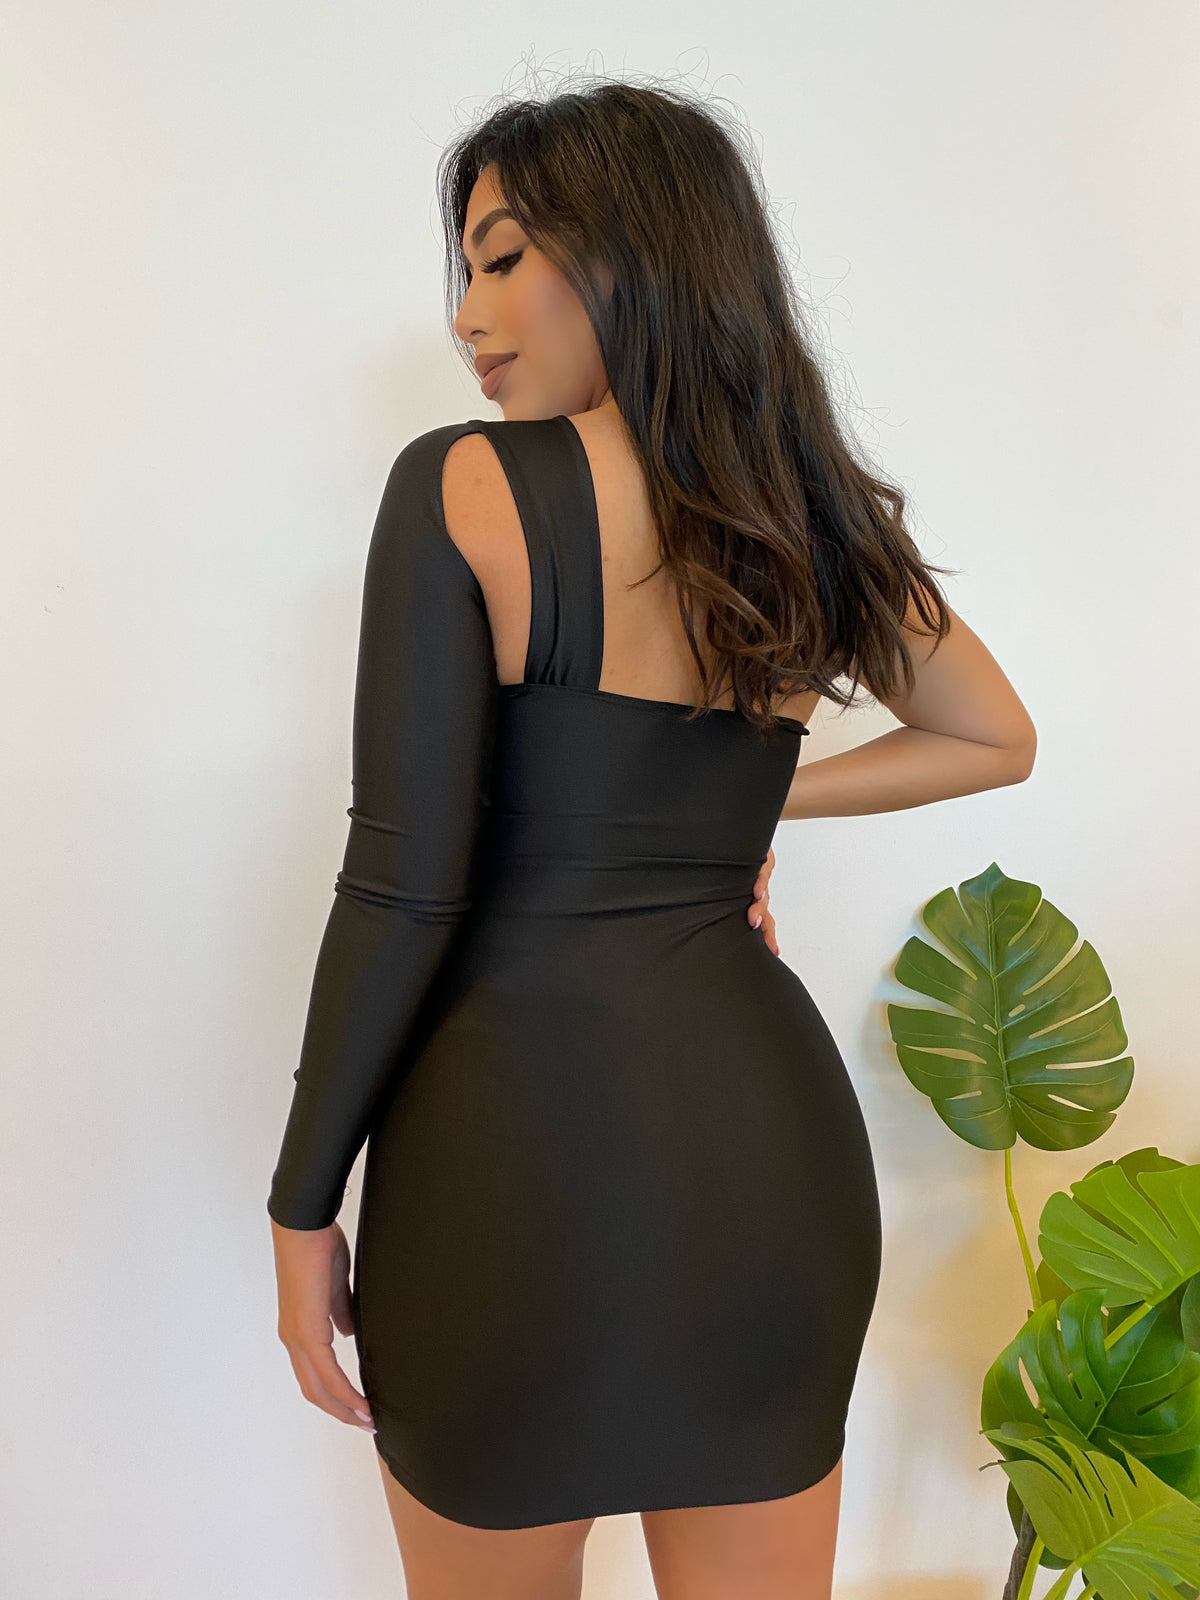 satin black dress, one shoulder dress, long sleeve, cut out, cleavage, mid thigh length